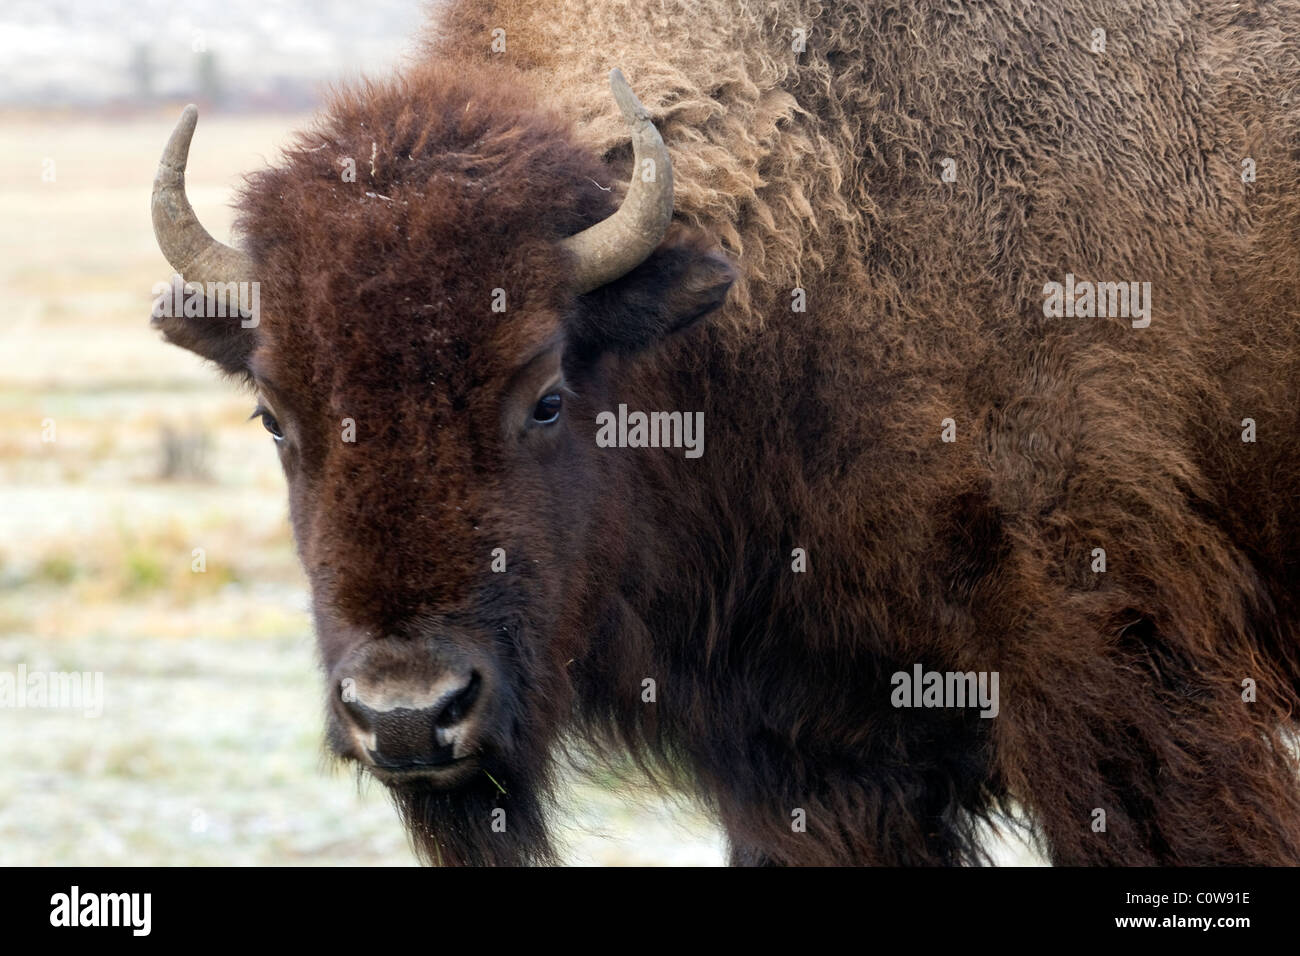 American Bison, Yellowstone National Park - Stock Image